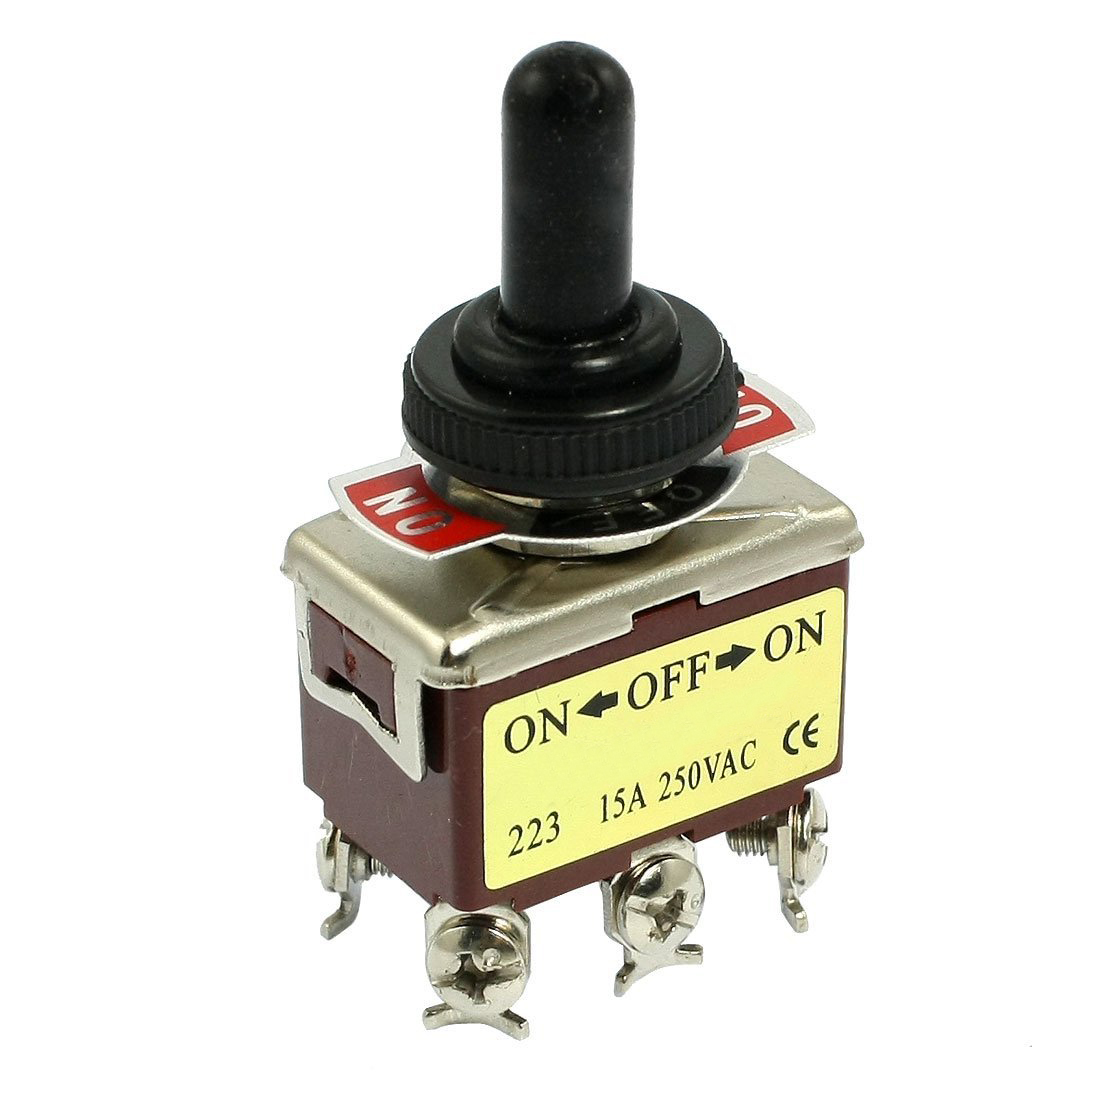 Mylb Ac 250v 15a 6 Pin Dpdt On Off 3 Position Mini Toggle Hall Effect Switchjpg Switch